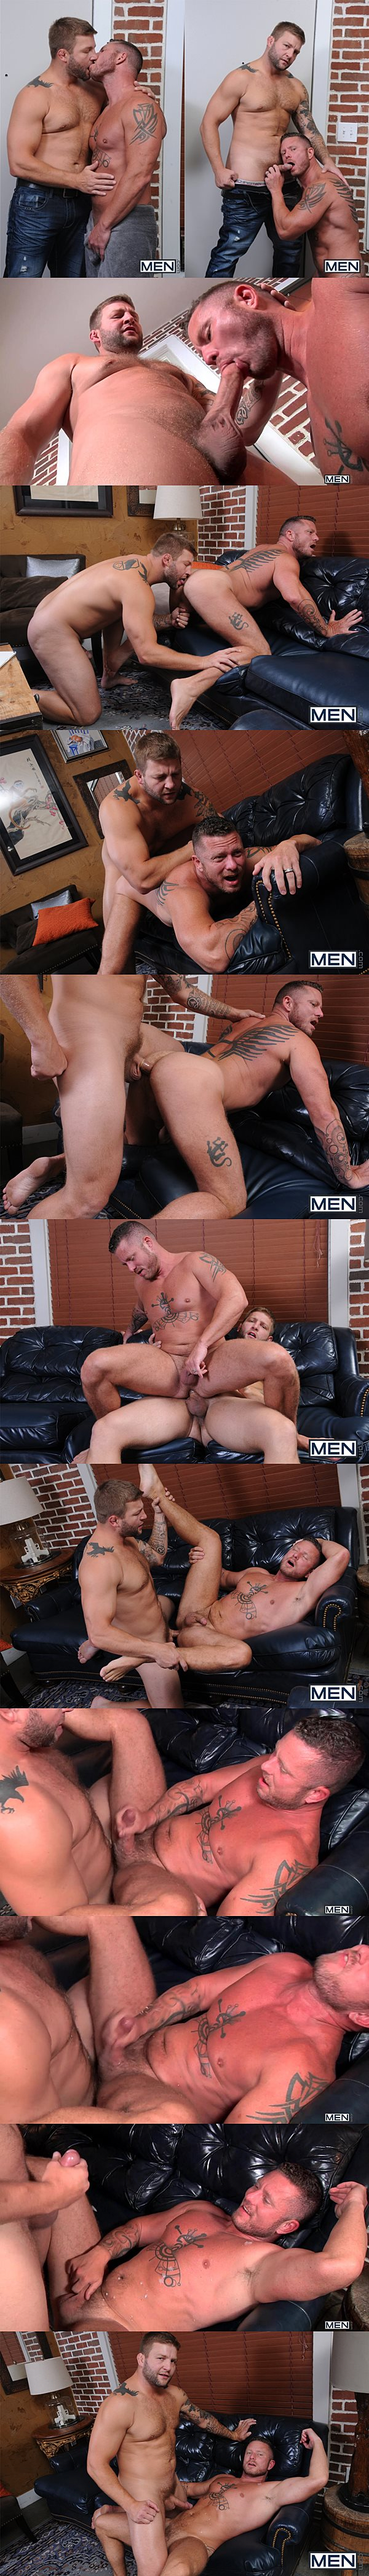 Colby Jansen fucks Charlie Harding's tight virgin ass in Top to Bottom Part 5 at Men 02